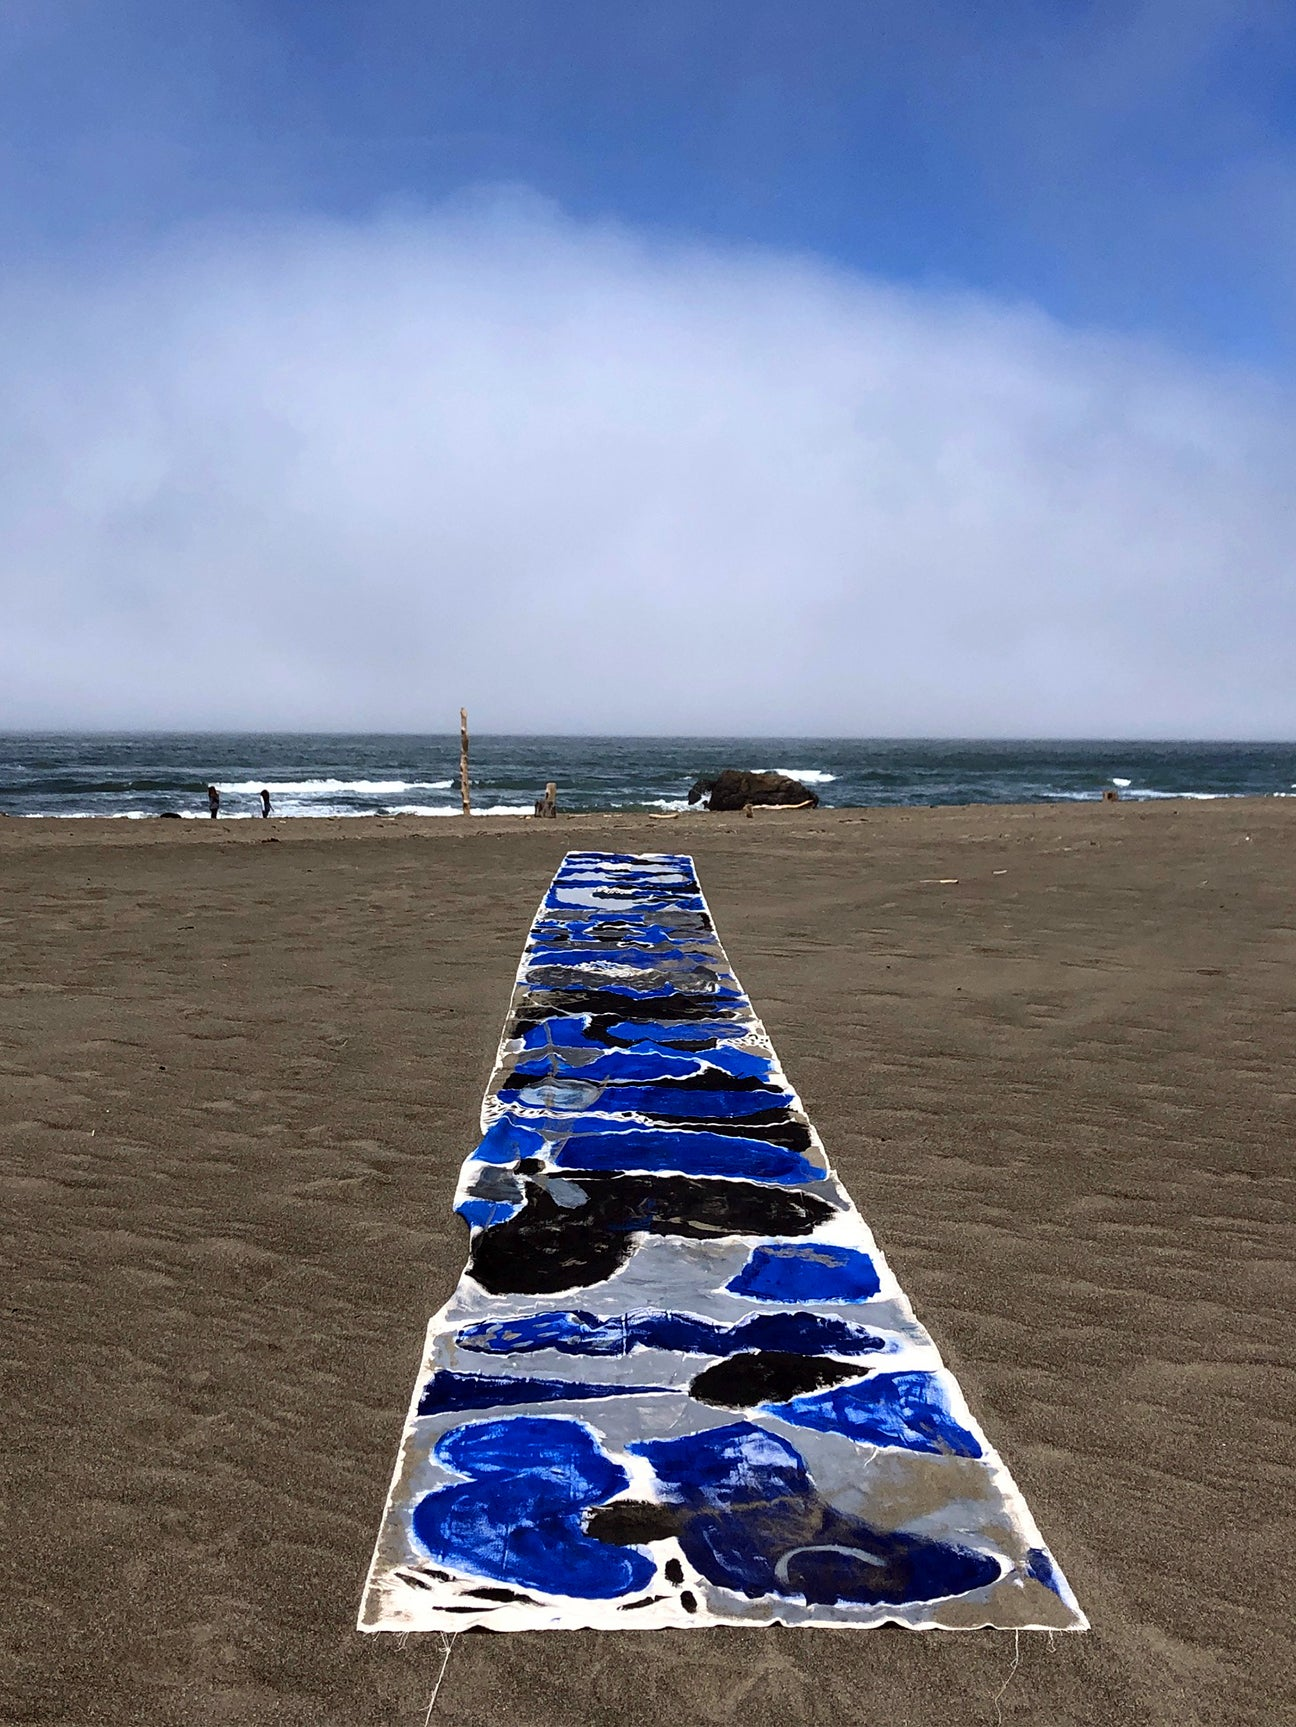 fabric strip laid out on the beach